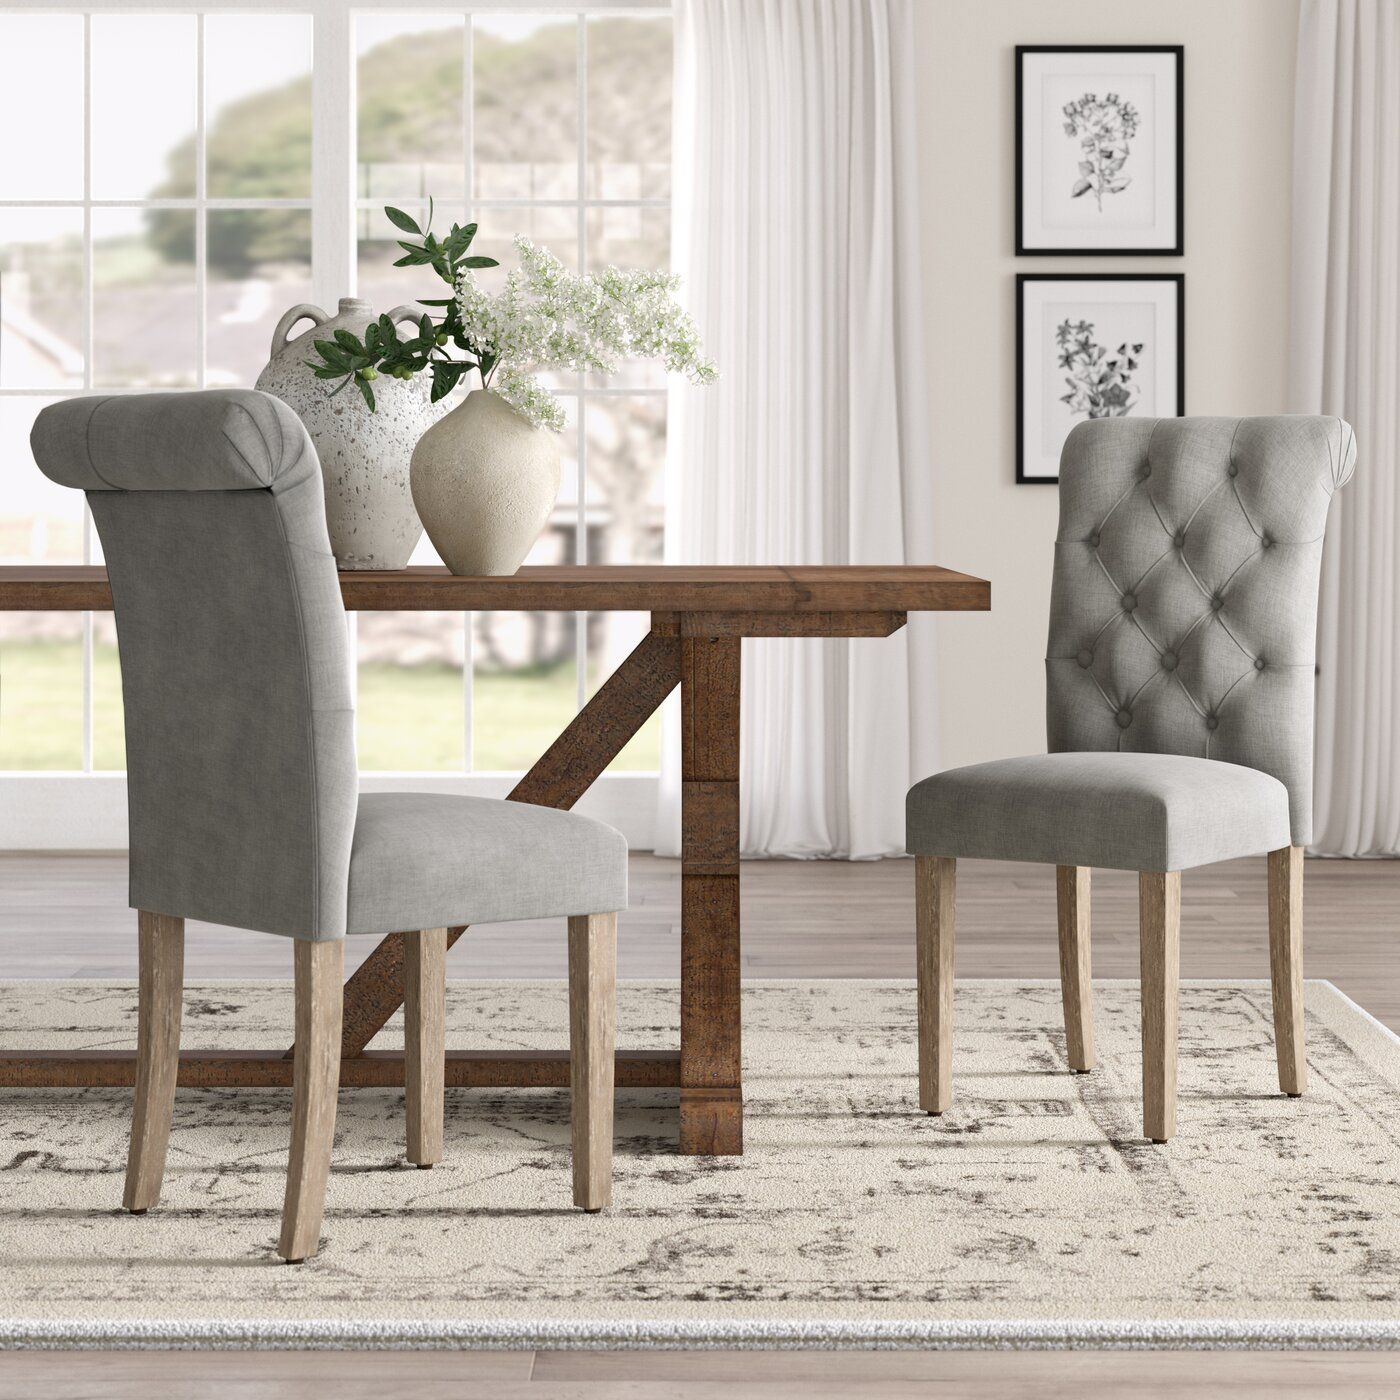 Lark Manor Bushey Roll Top Upholstered Dining Chair Regarding Bob Stripe Upholstered Dining Chairs (Set Of 2) (View 13 of 15)